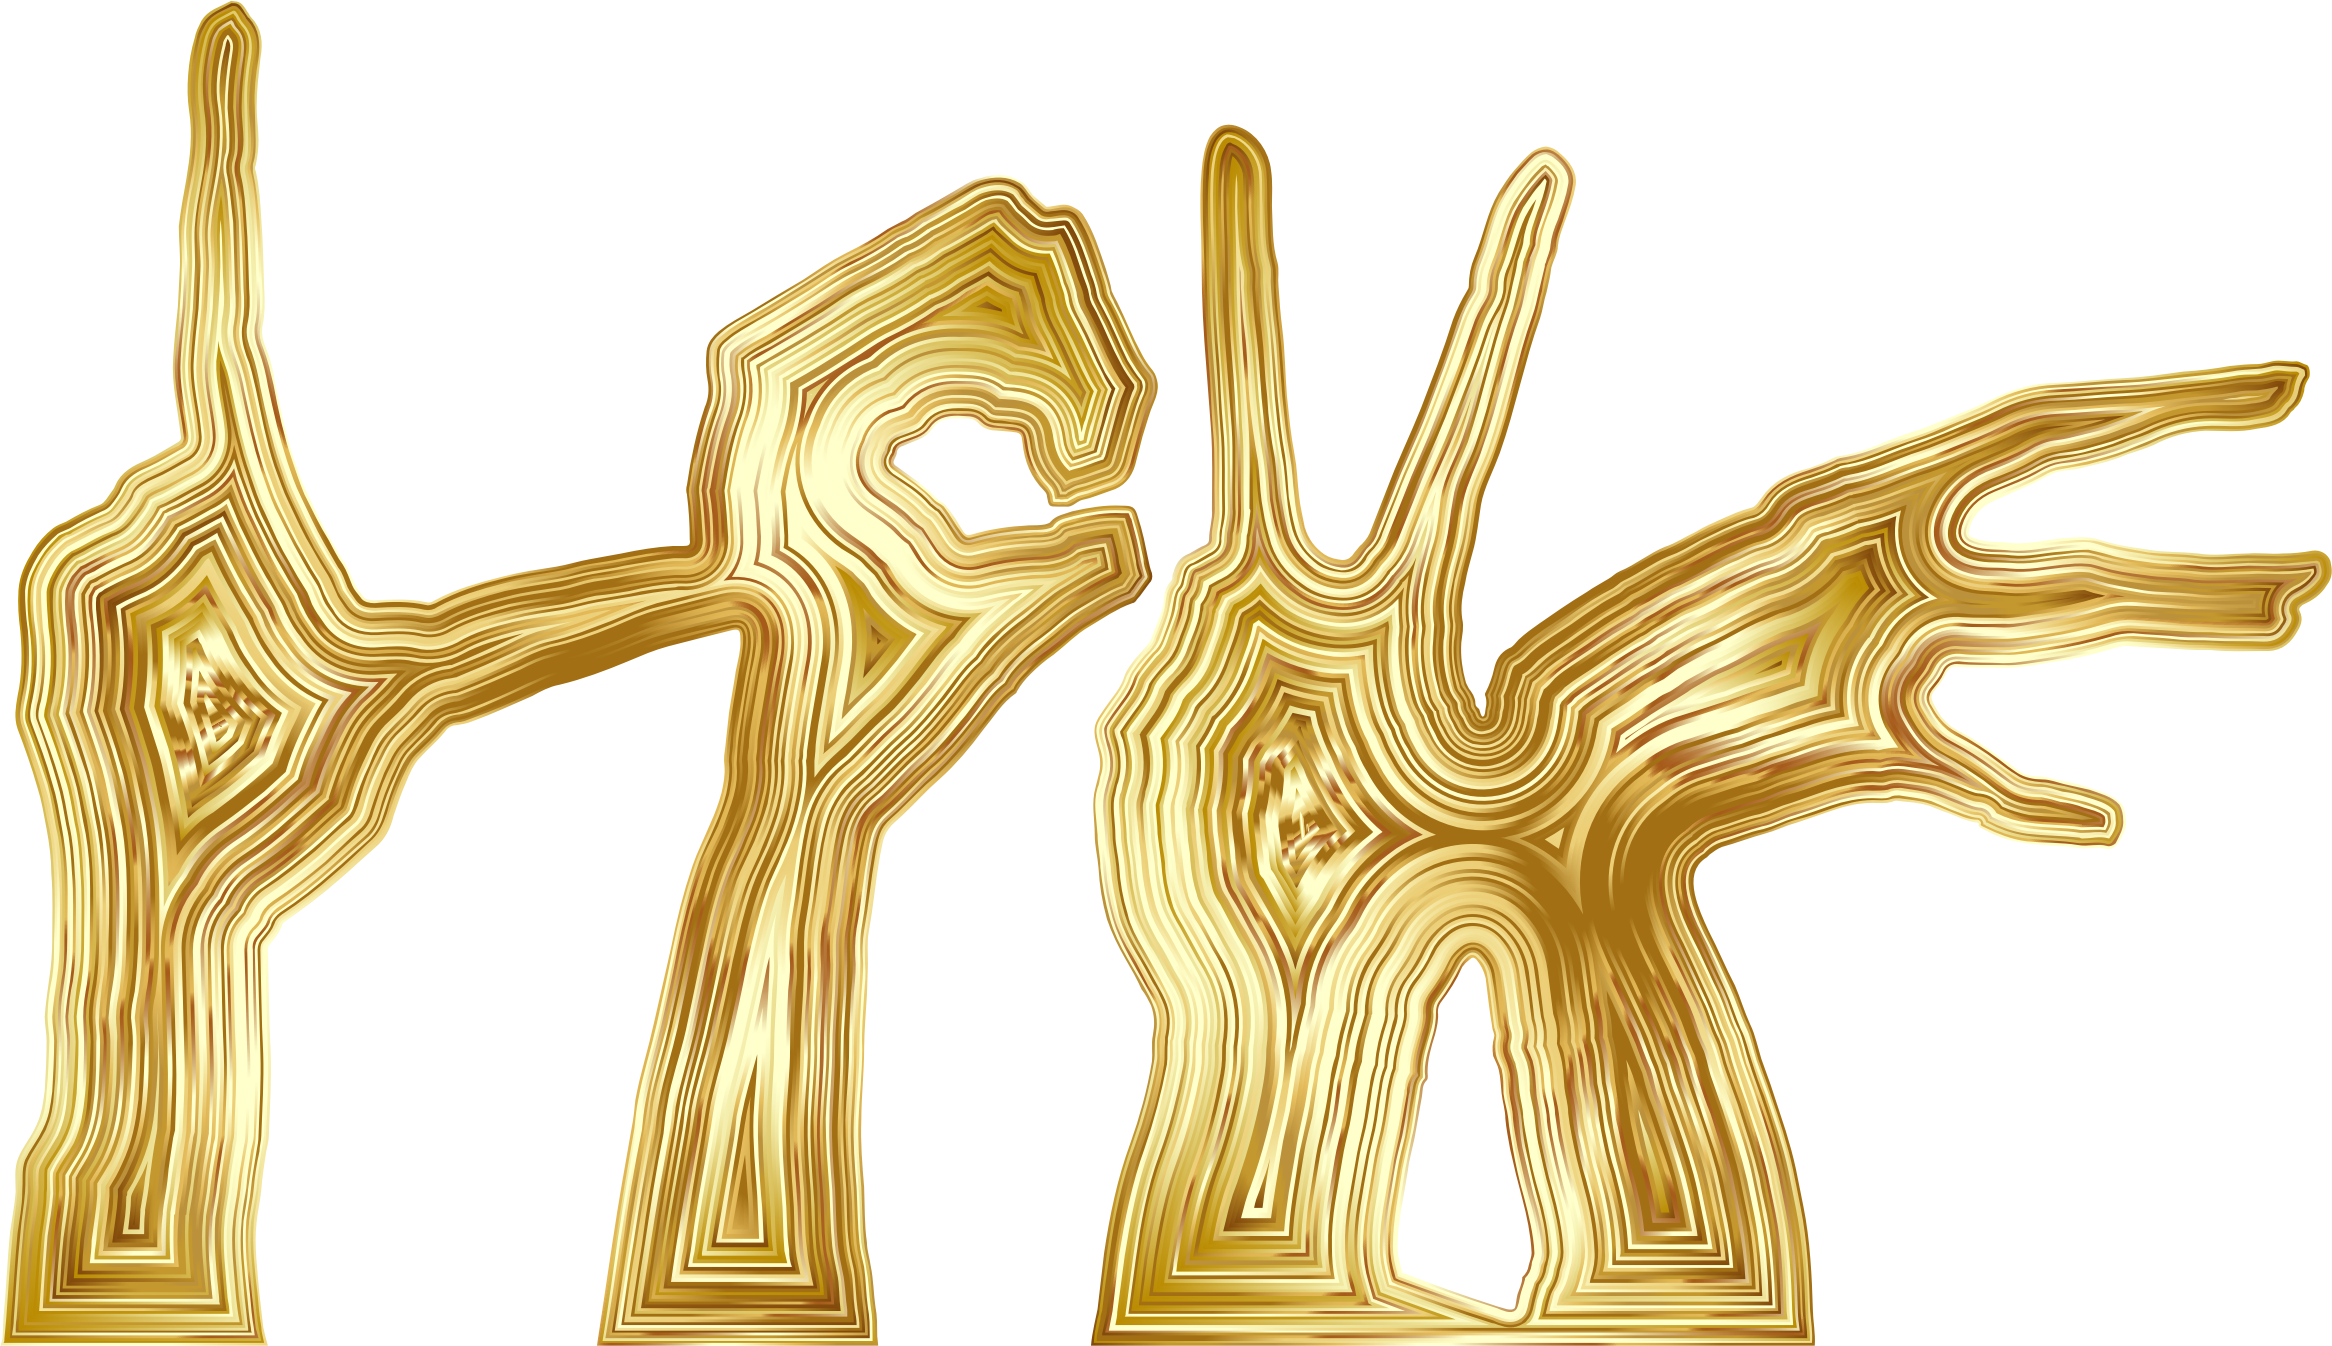 Gold Love Hands Silhouette by GDJ